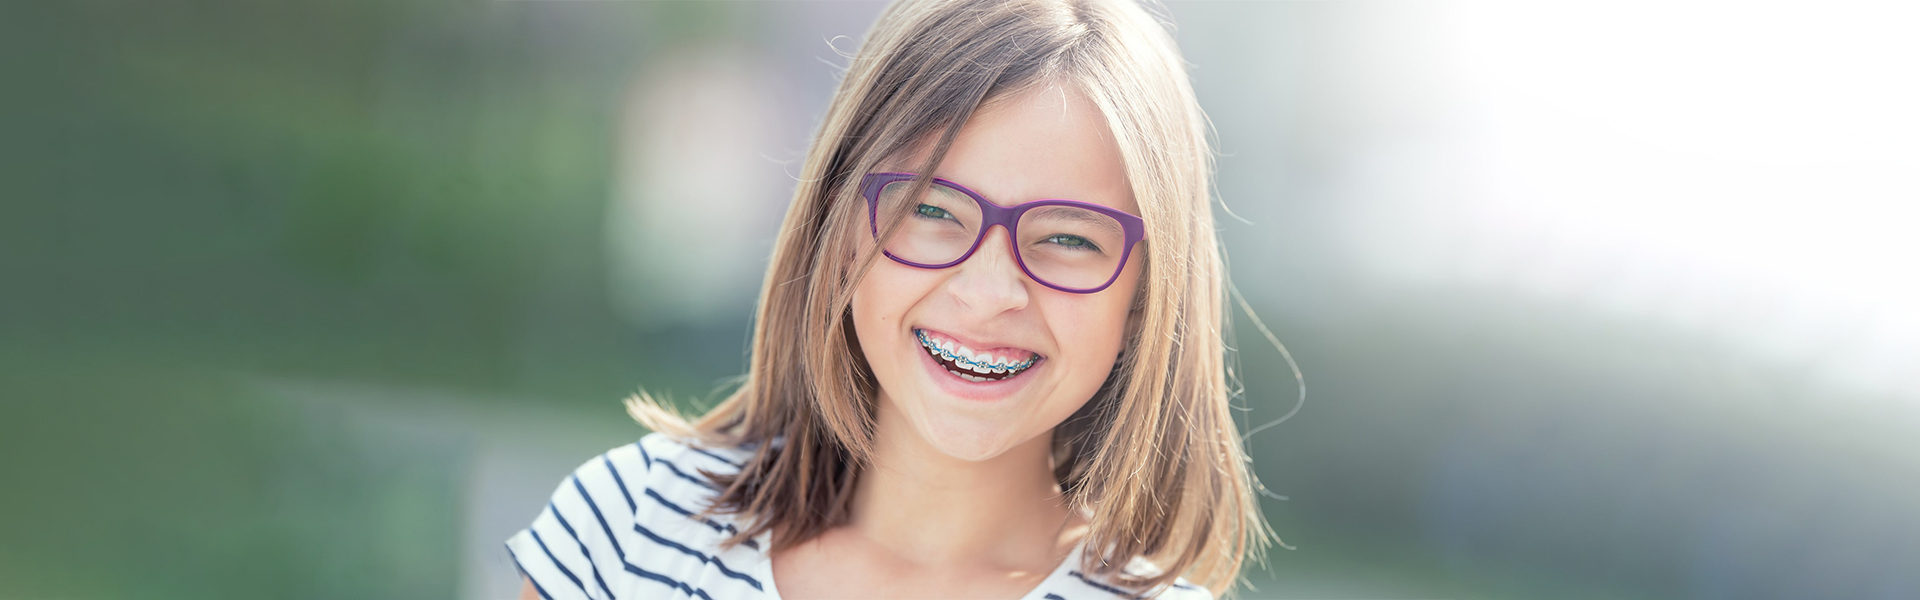 Straightening Your Teeth With Orthodontic Treatment